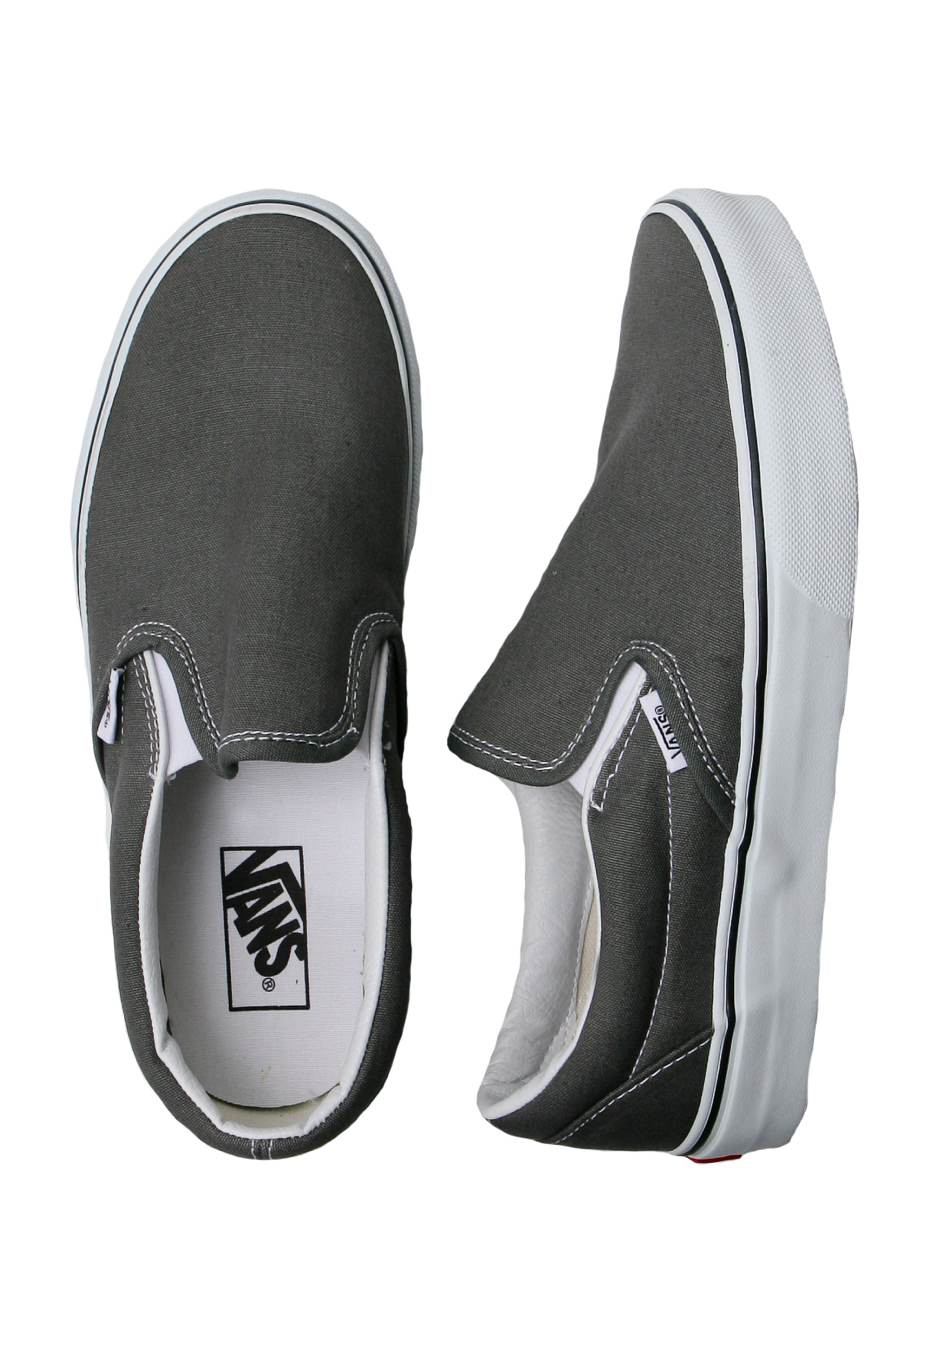 416e8098f8 Vans - Classic Slip-On Charcoal - Shoes - Impericon.com UK